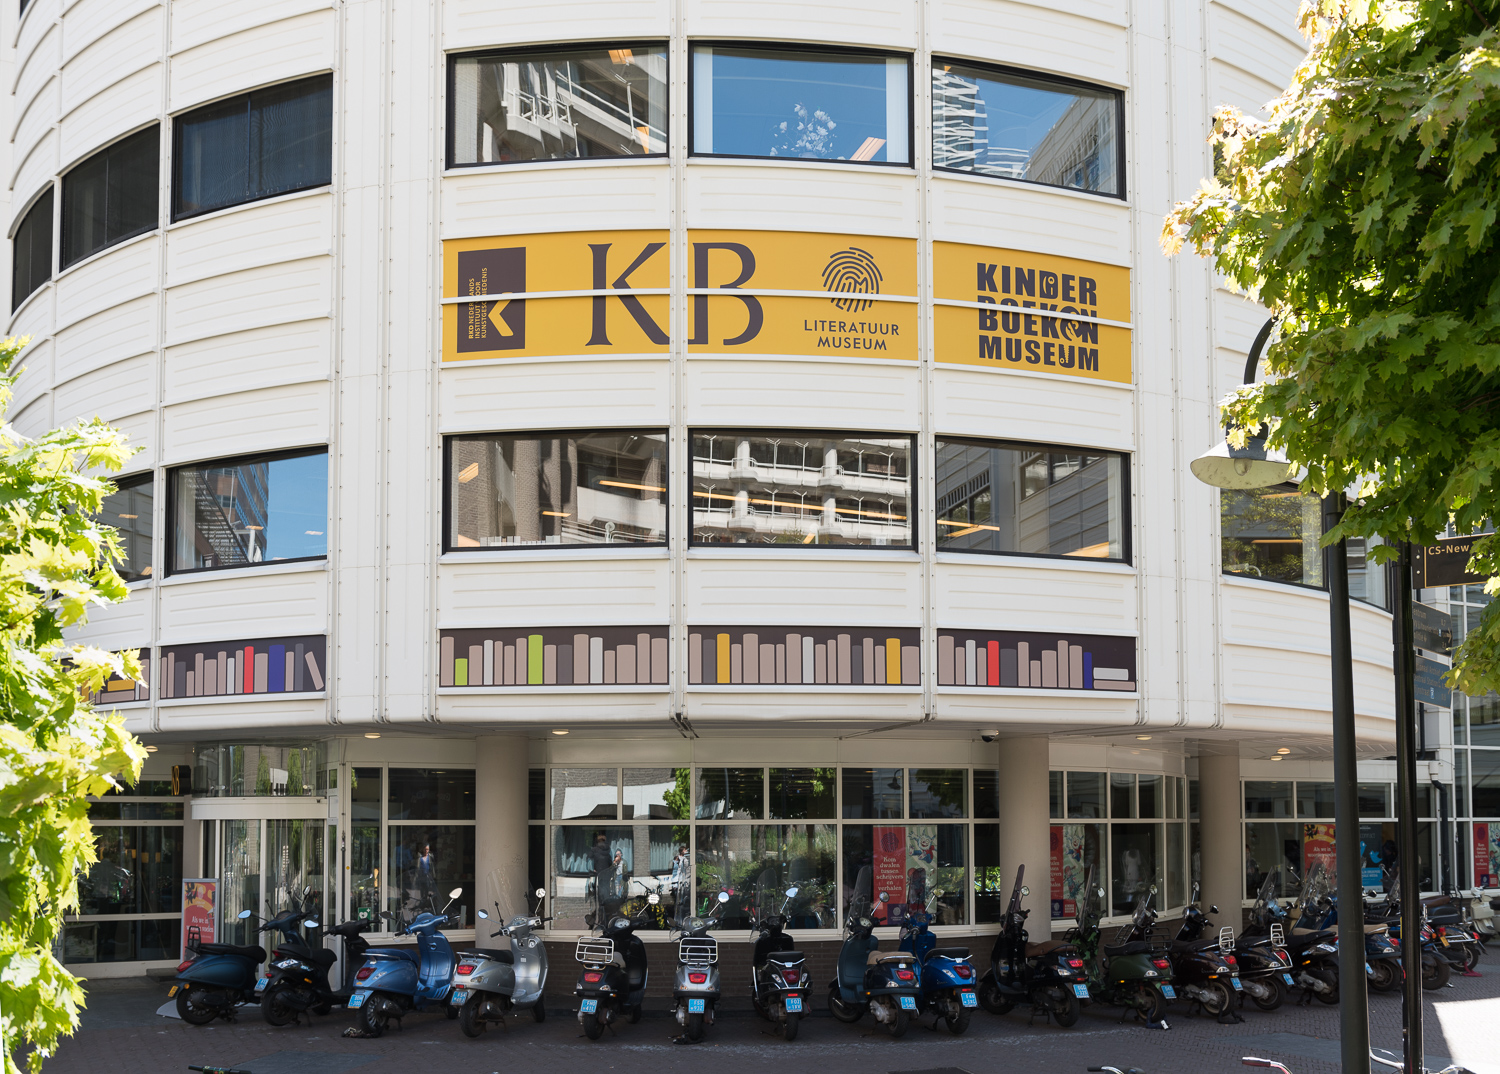 Identification on the front of the KB building (close-up)